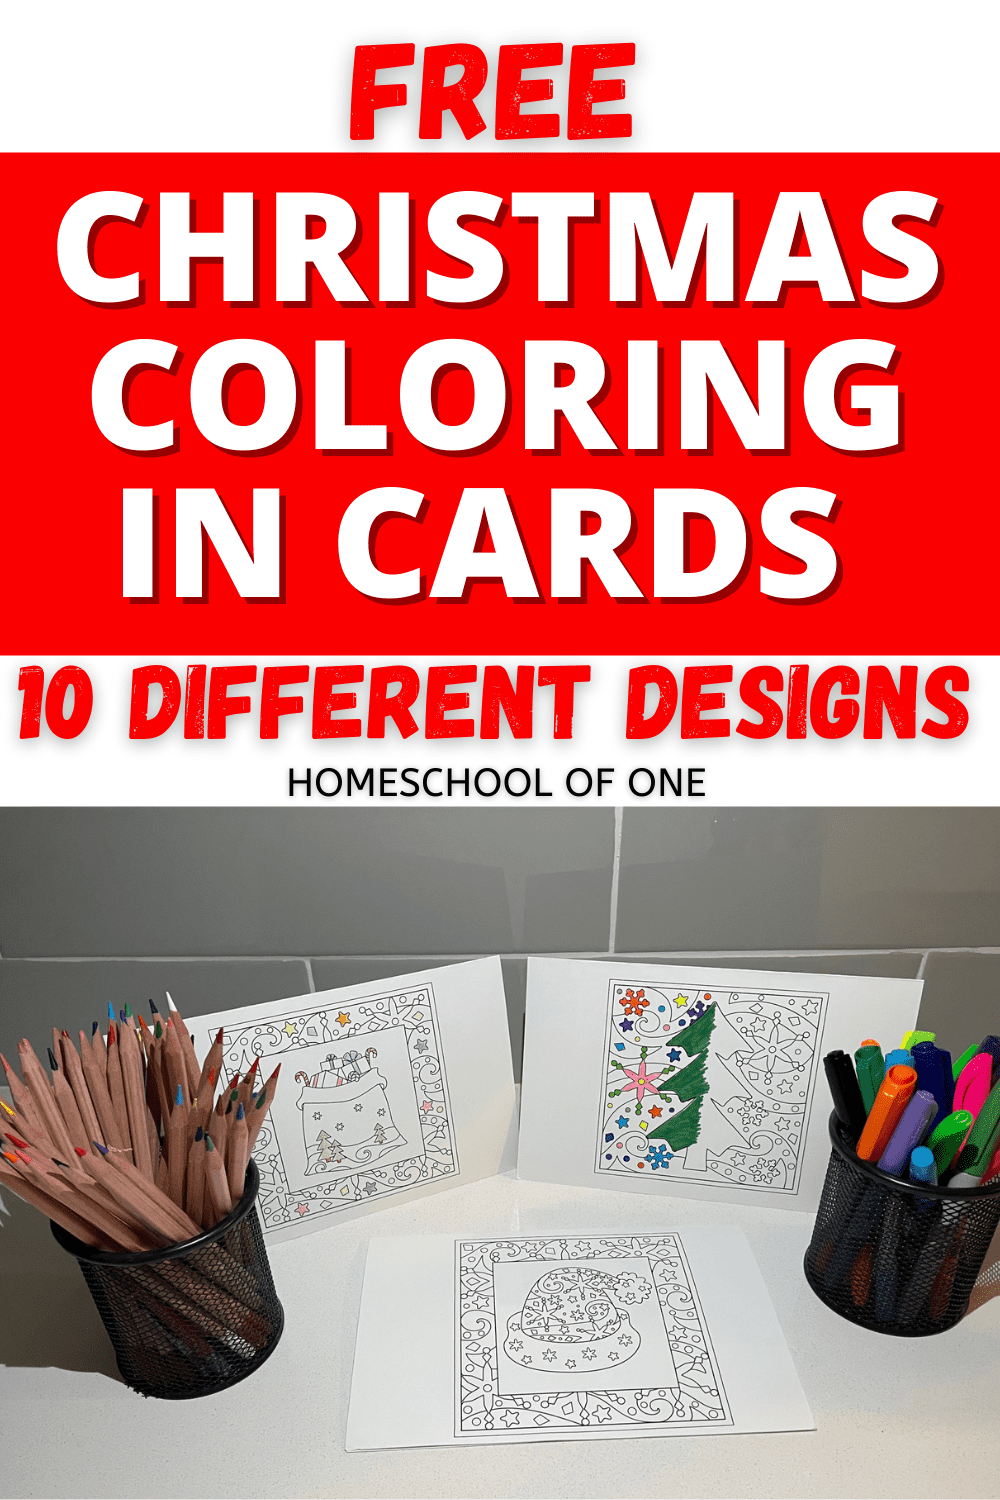 10 Free Christmas coloring in cards perfect for both kids and adults. Create your own homemade Christmas cards for FREE. #christmascards #christmashomemade